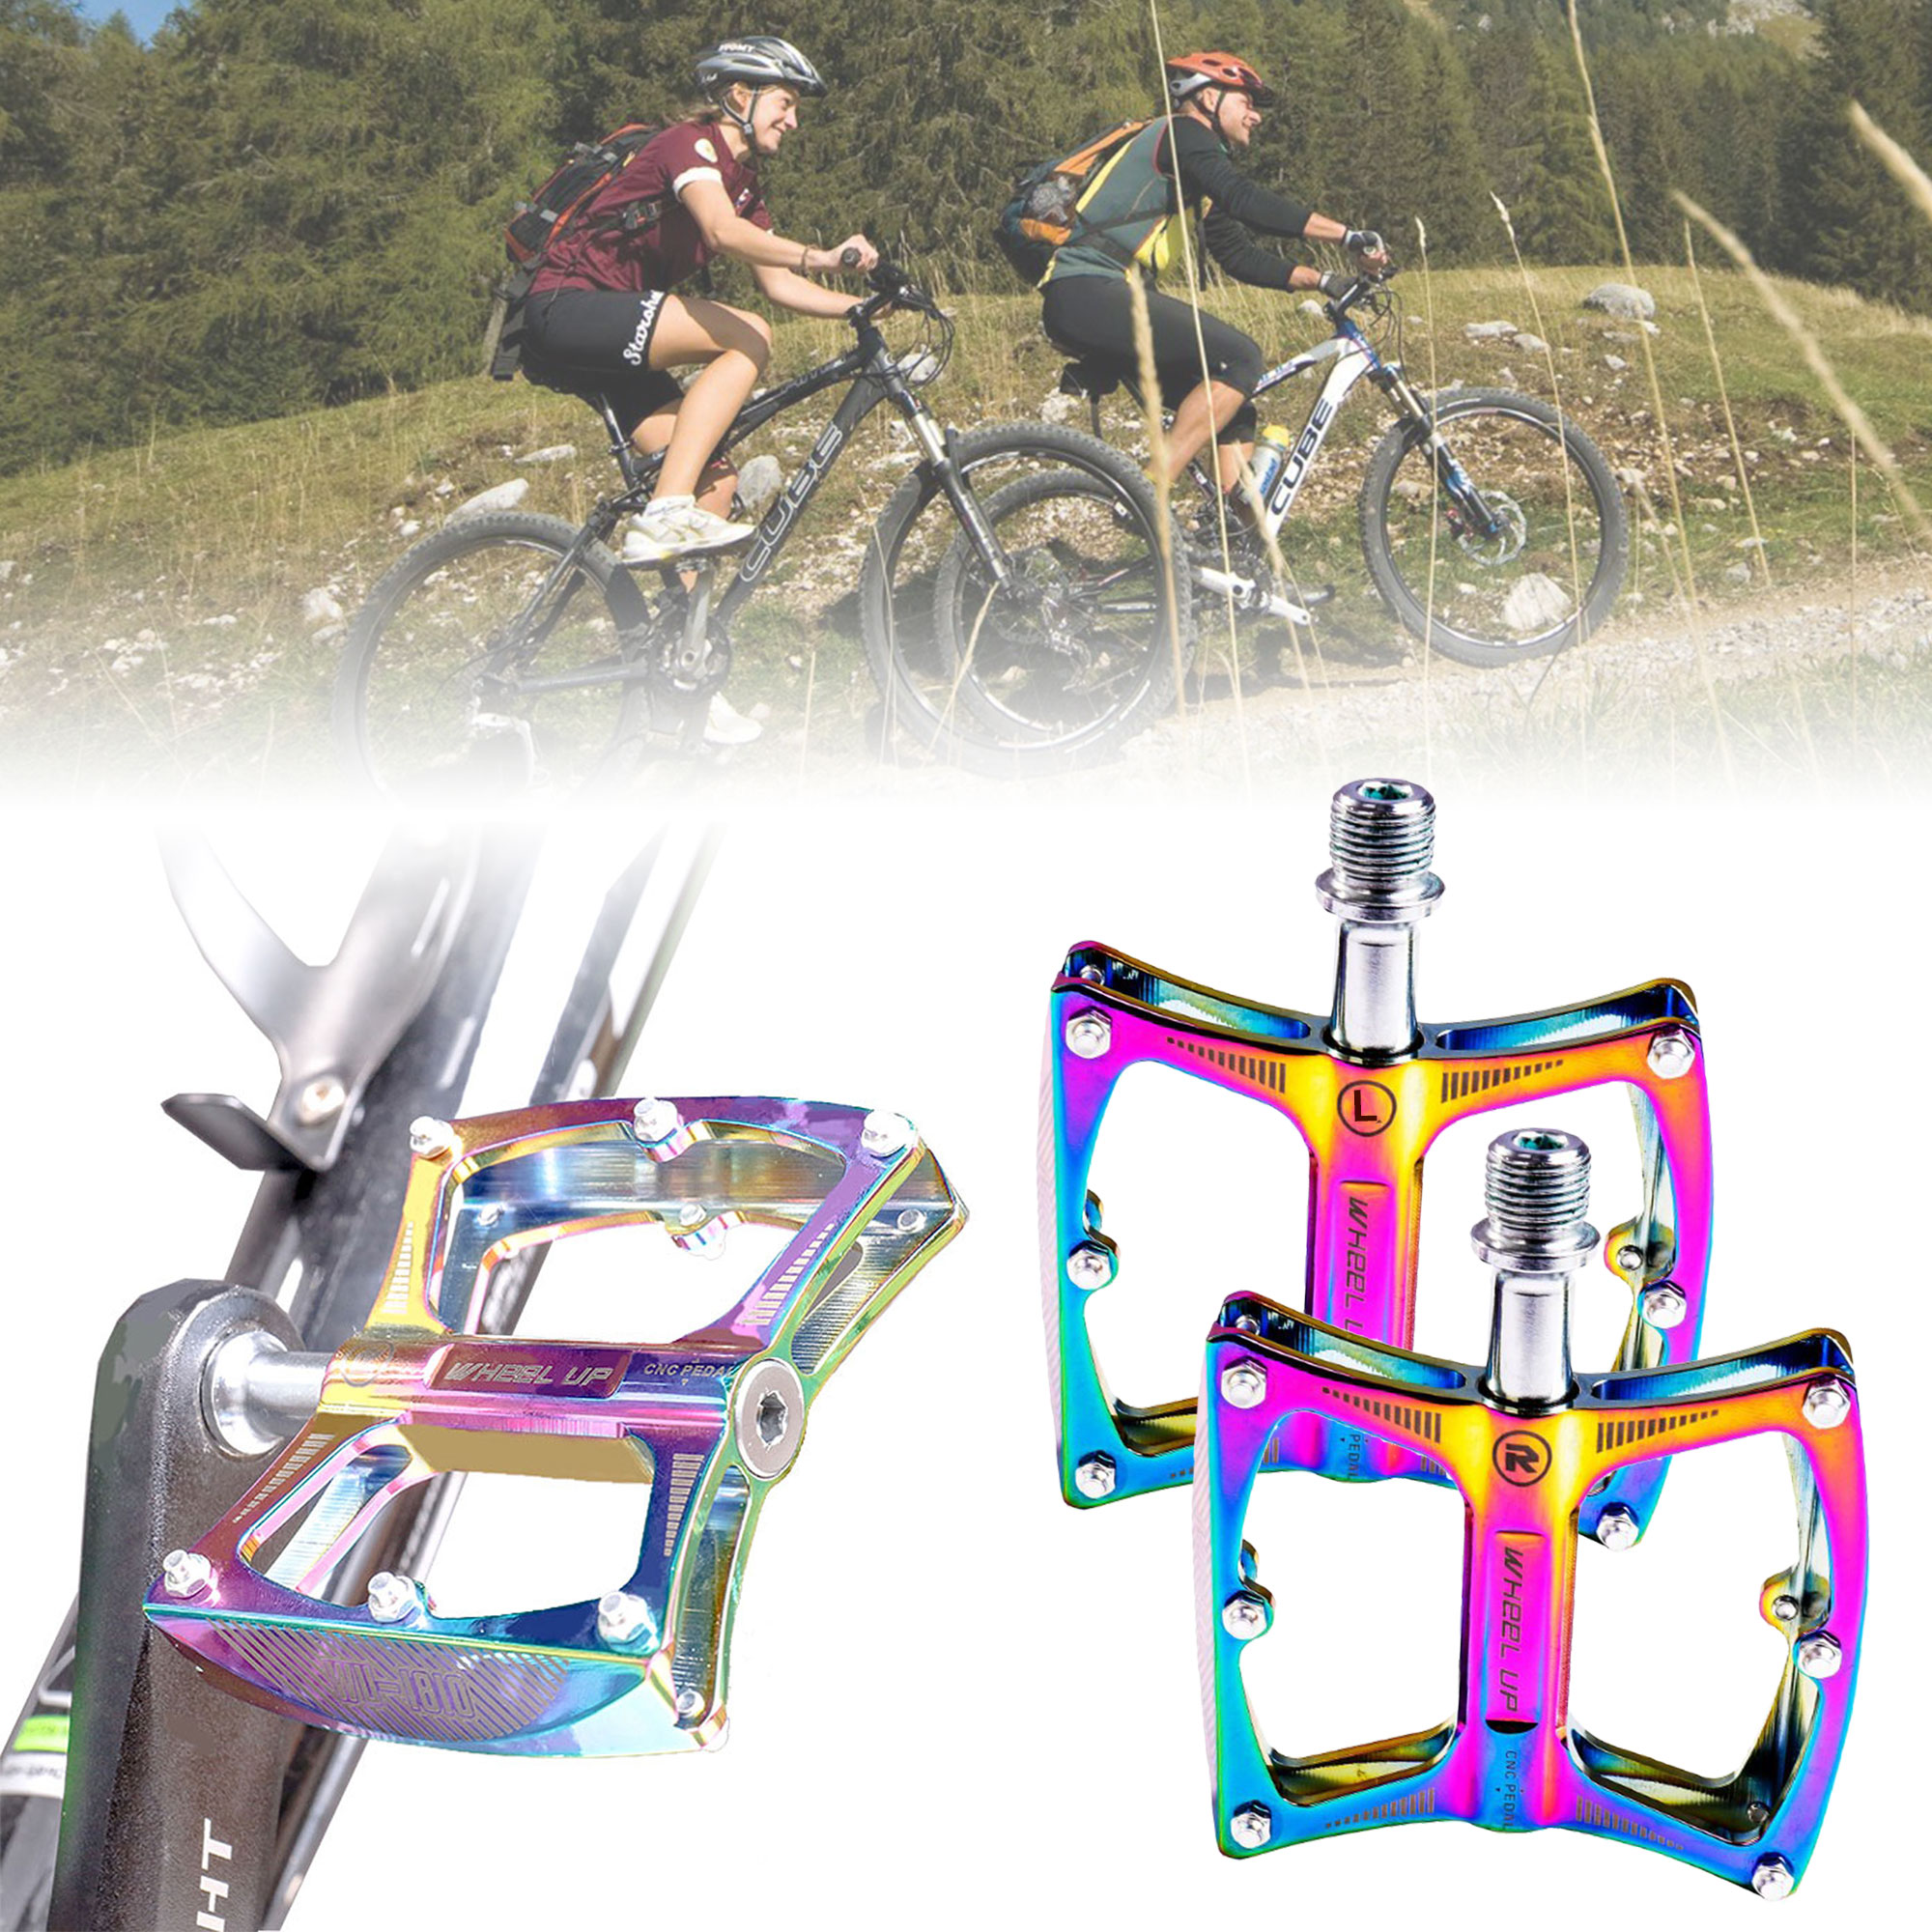 Aluminum Alloy Mountain Bike Bicycle Pedals Fit For MTB Flat Platform 1 Pair